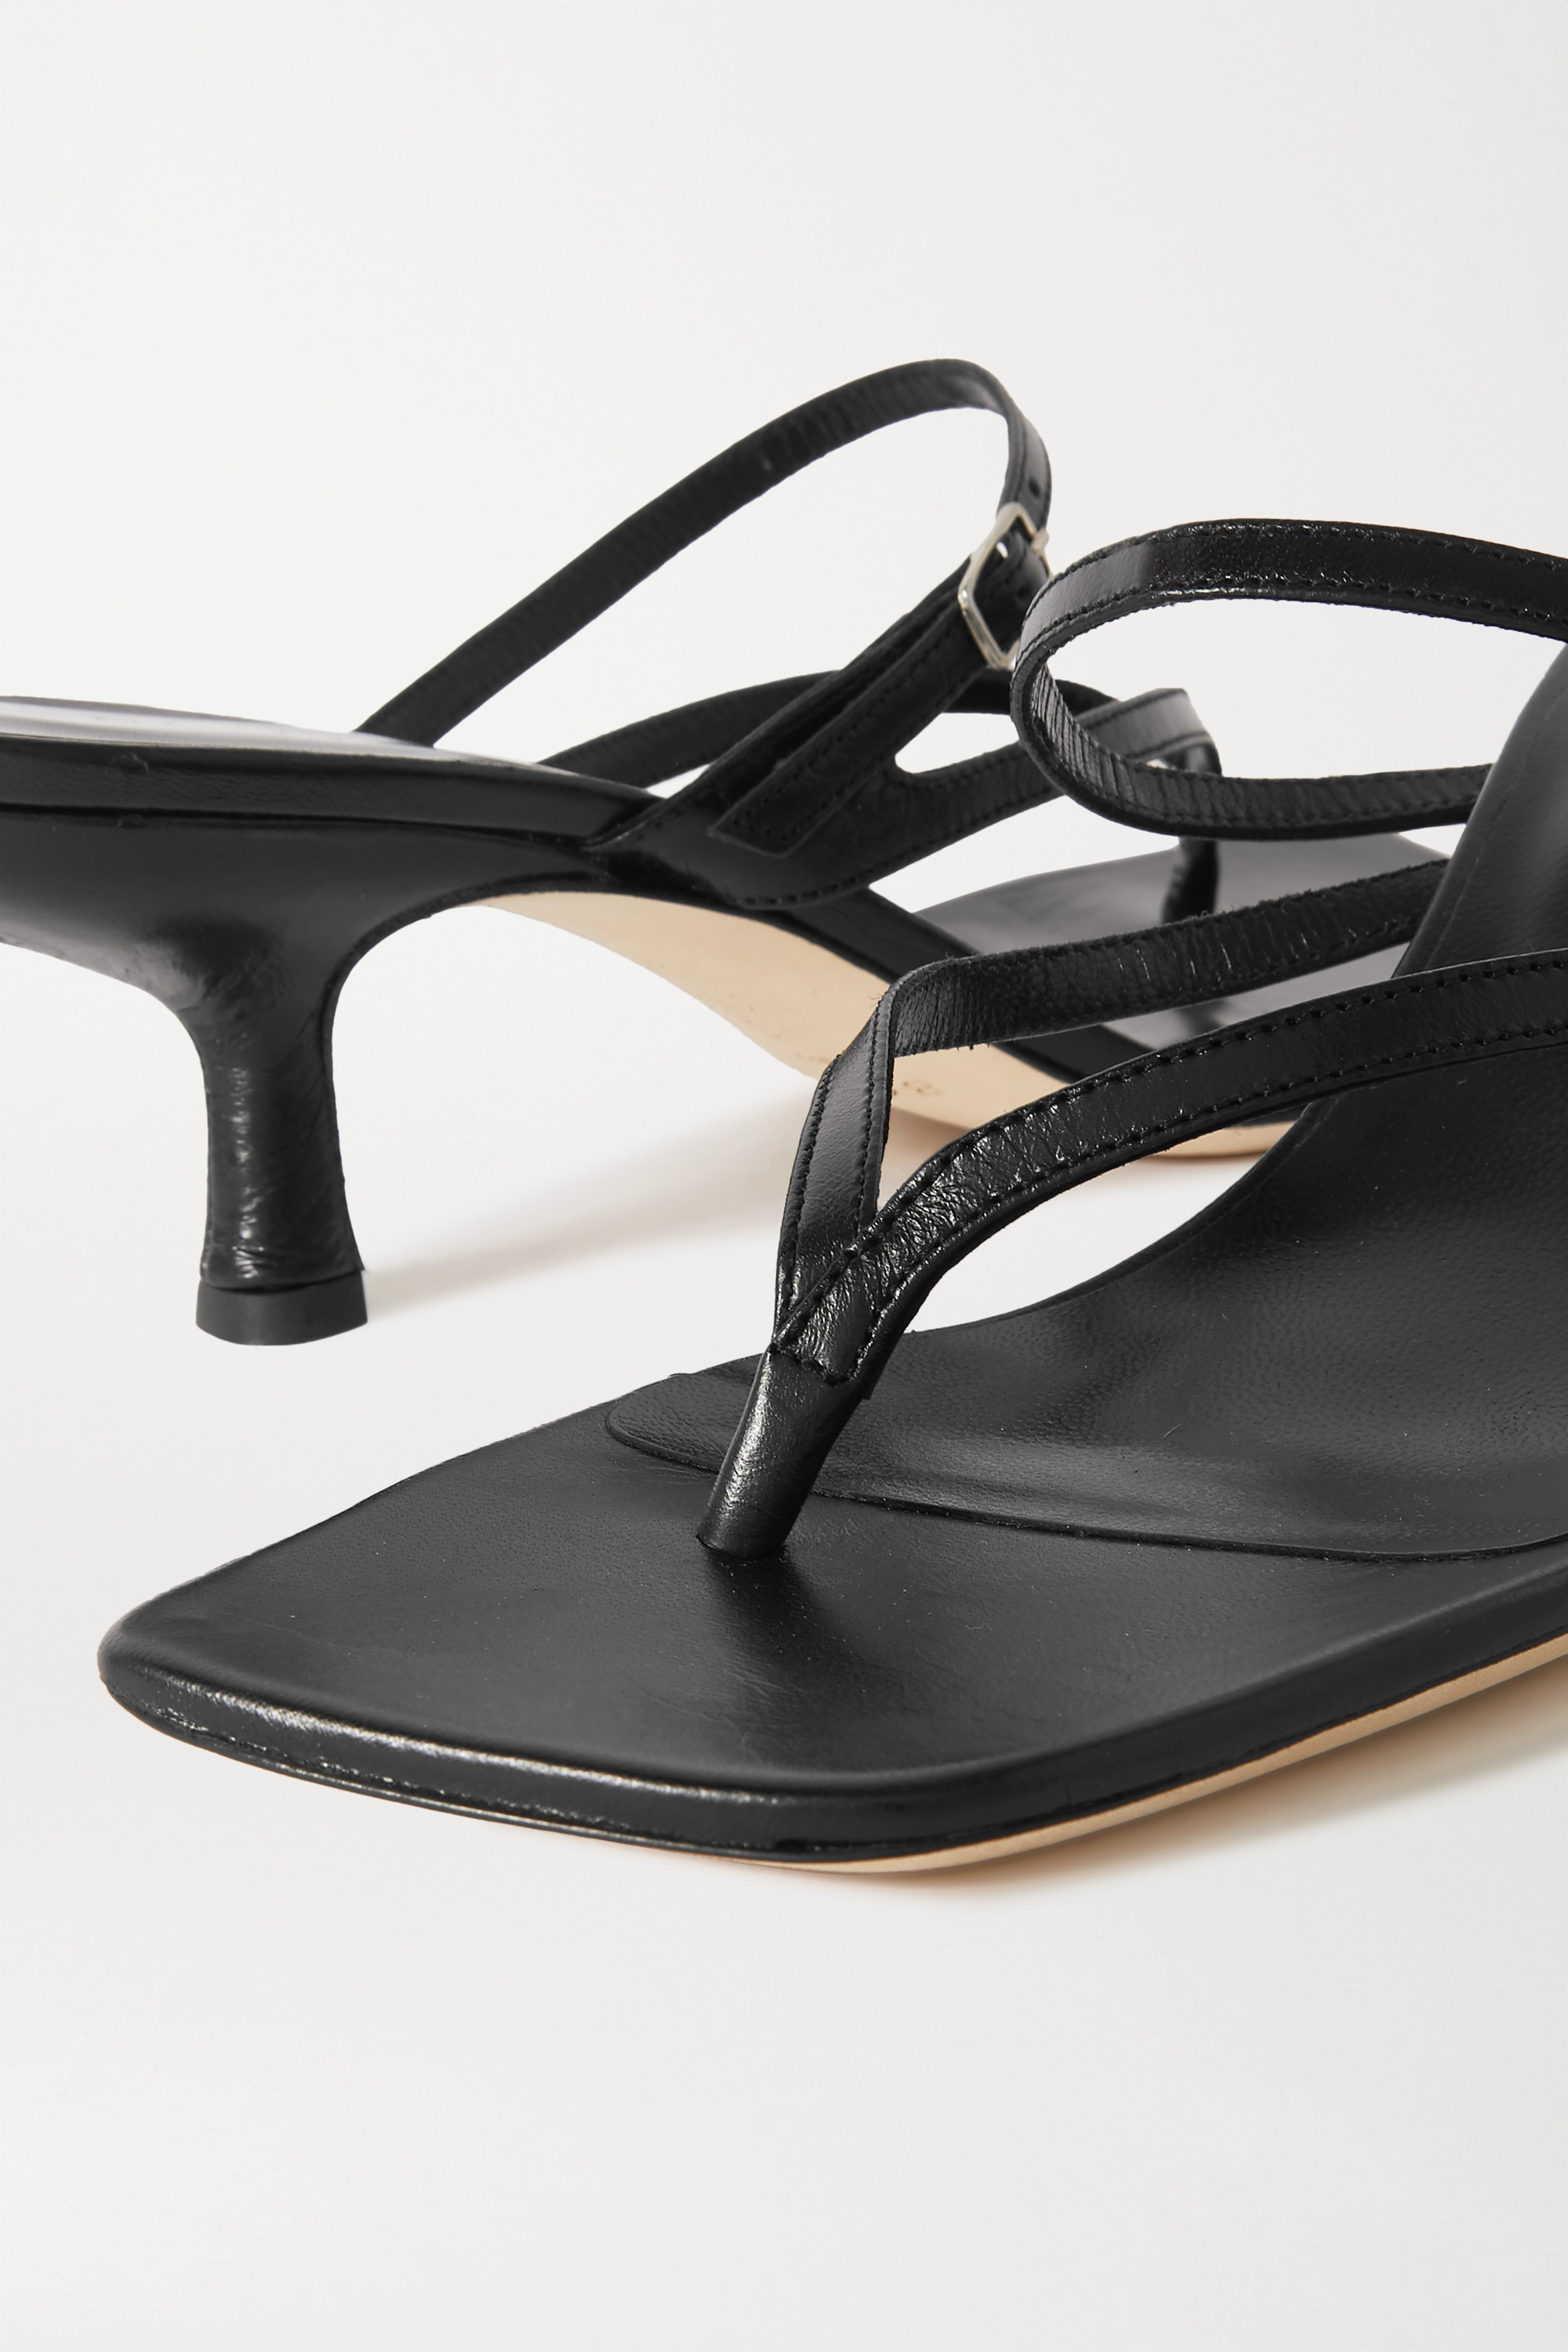 BY FAR Desiree leather sandals